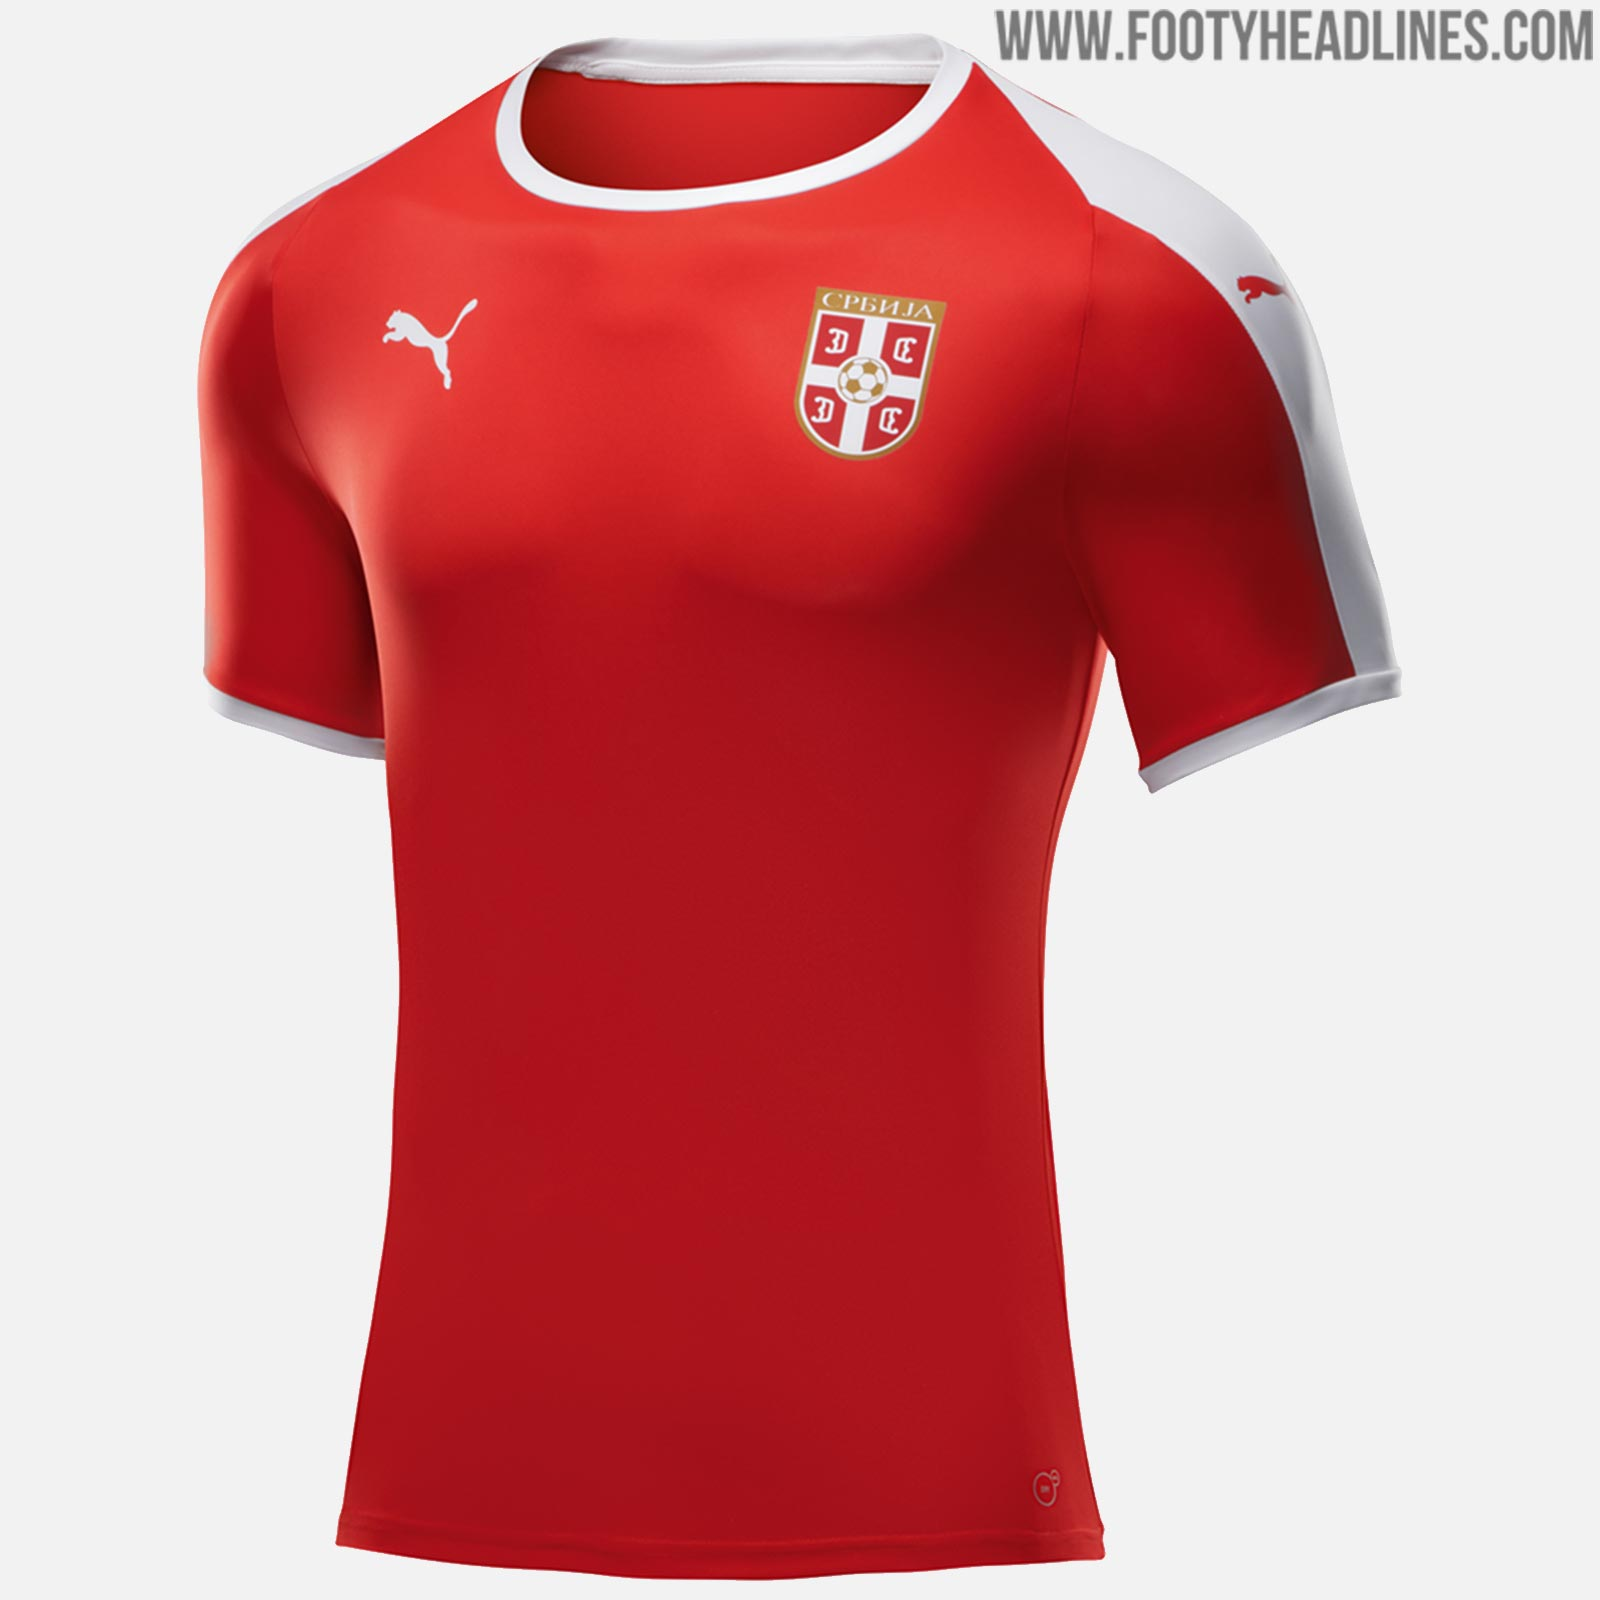 3b267c469d7 The Serbia 2018 World Cup home kit is just a 10 GBP Teamwear kit.